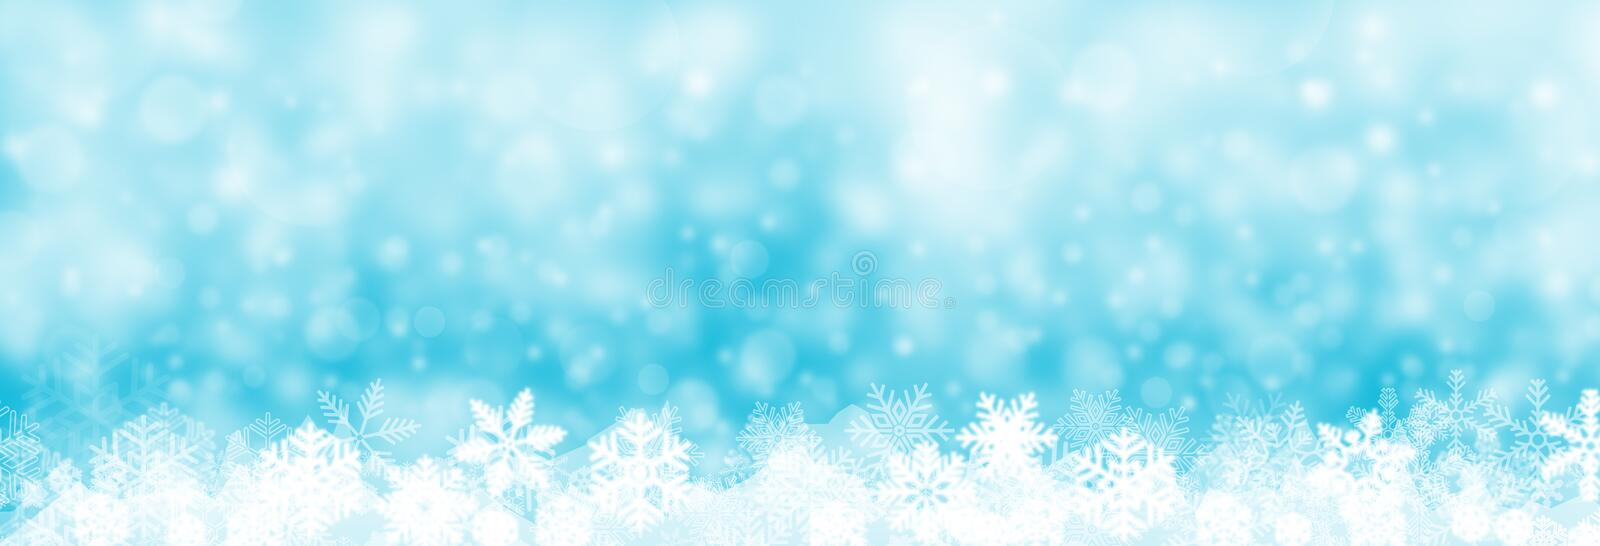 Christmas background banner, snow and snowflake illustration , vector illustration